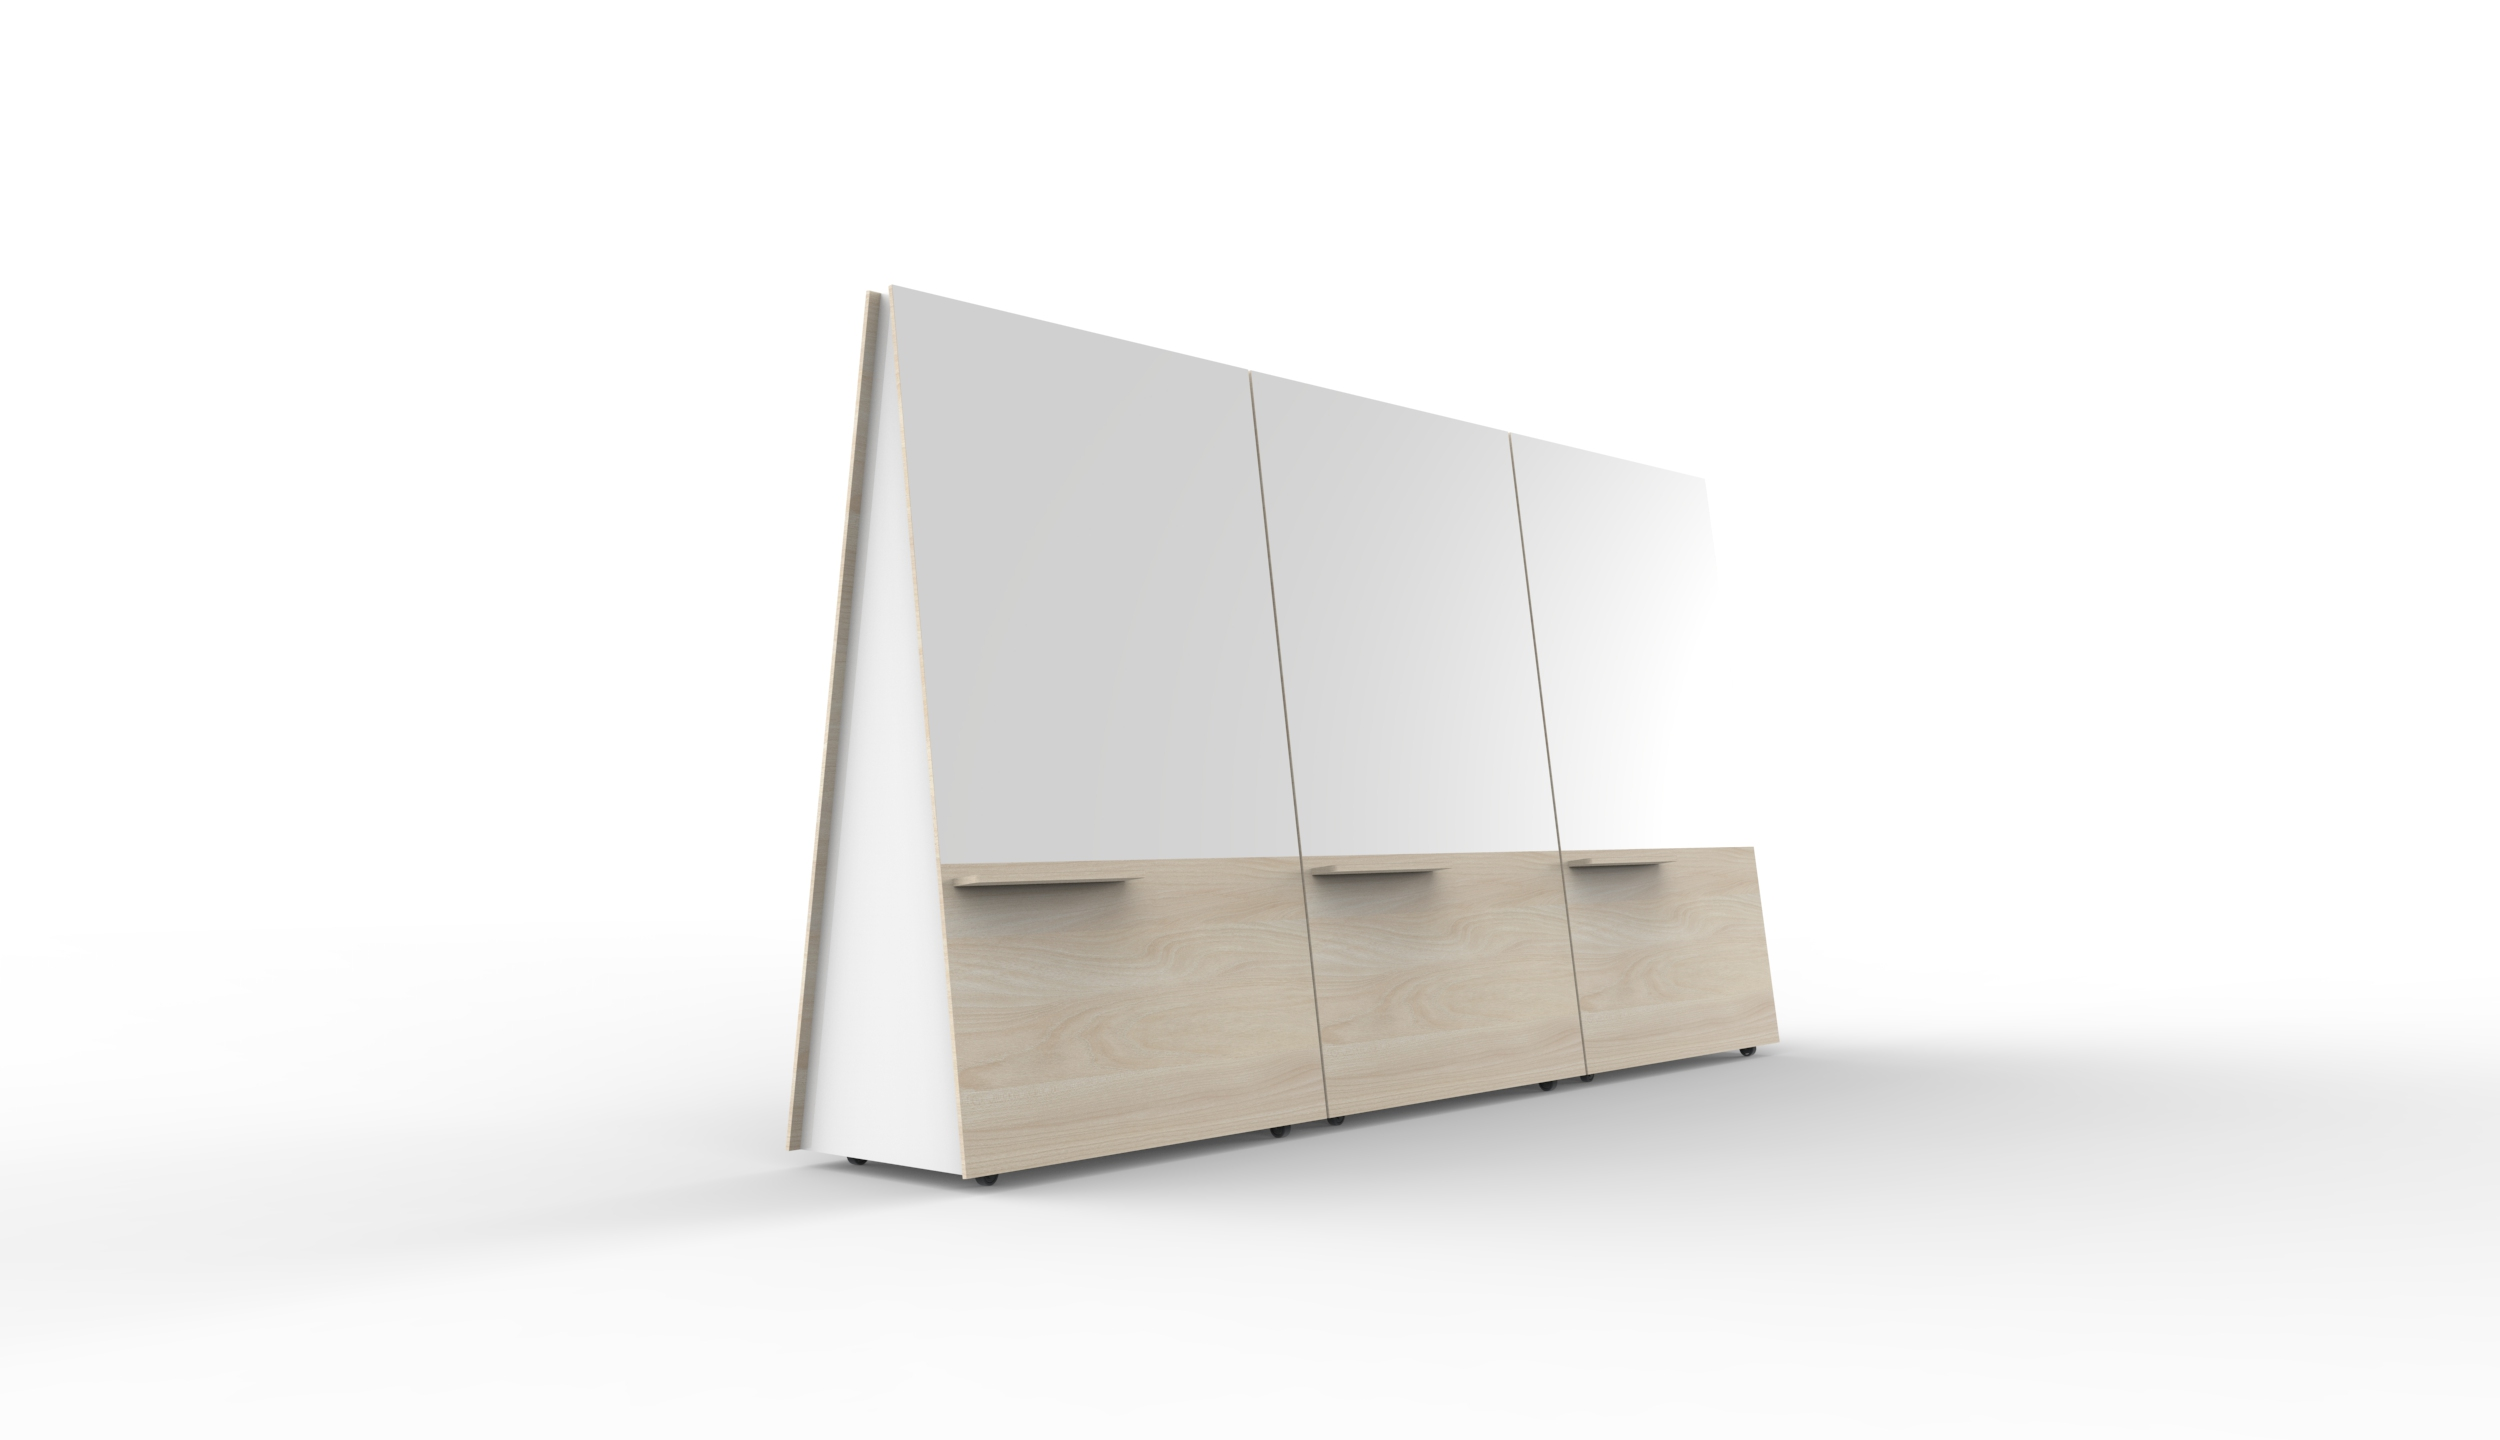 Three Wedge Whiteboards by Luxxbox